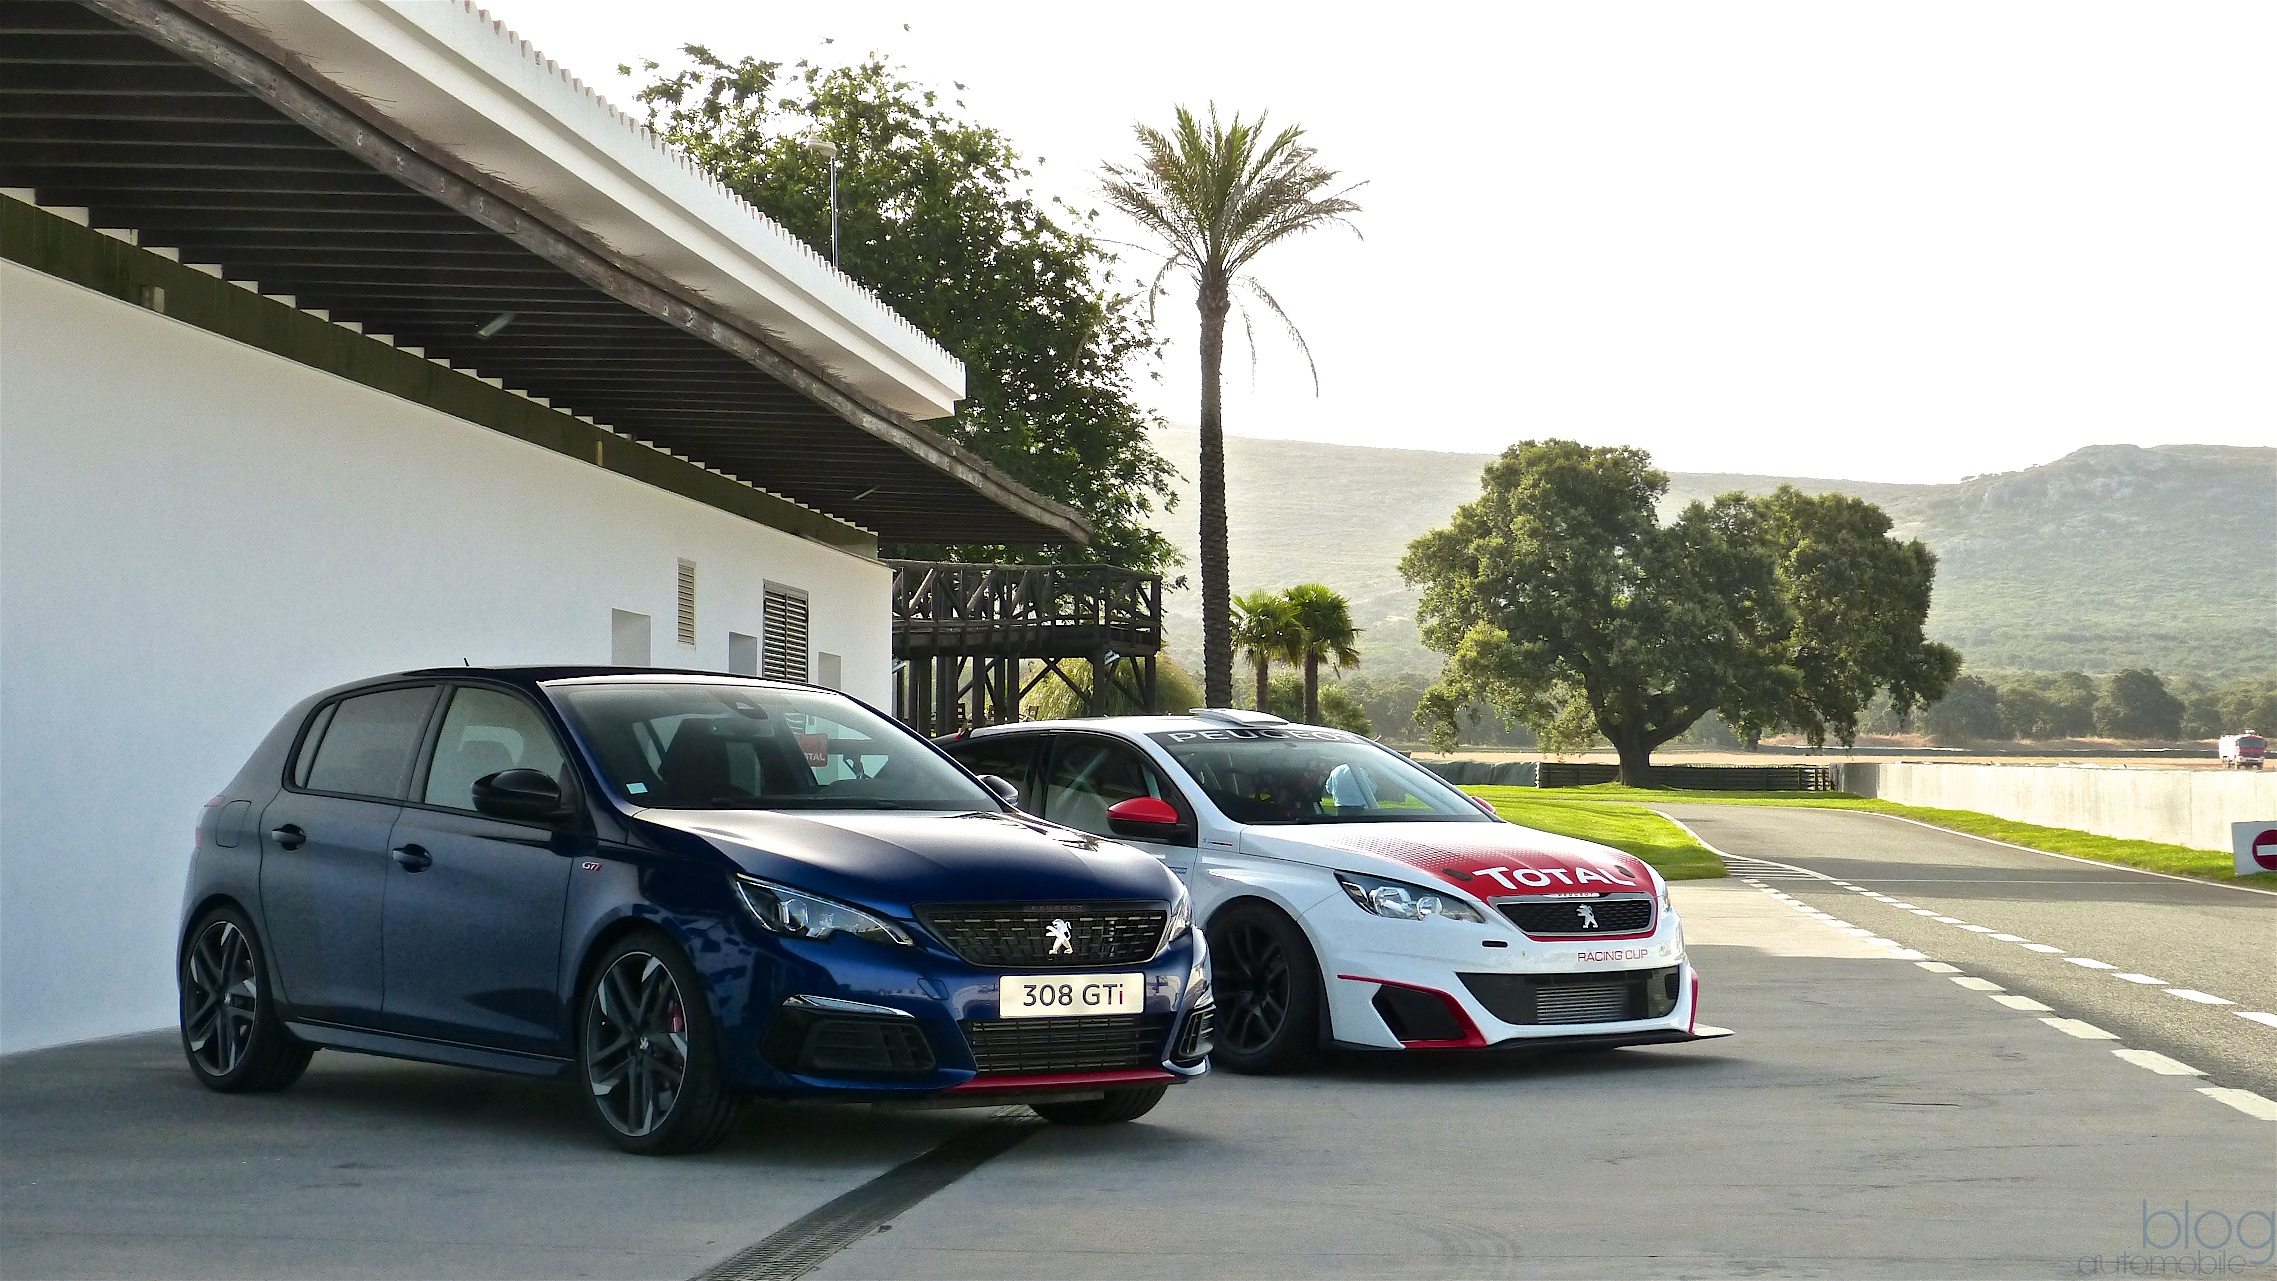 essai peugeot 308 gti facelift 308 racing cup sport tous les tages. Black Bedroom Furniture Sets. Home Design Ideas